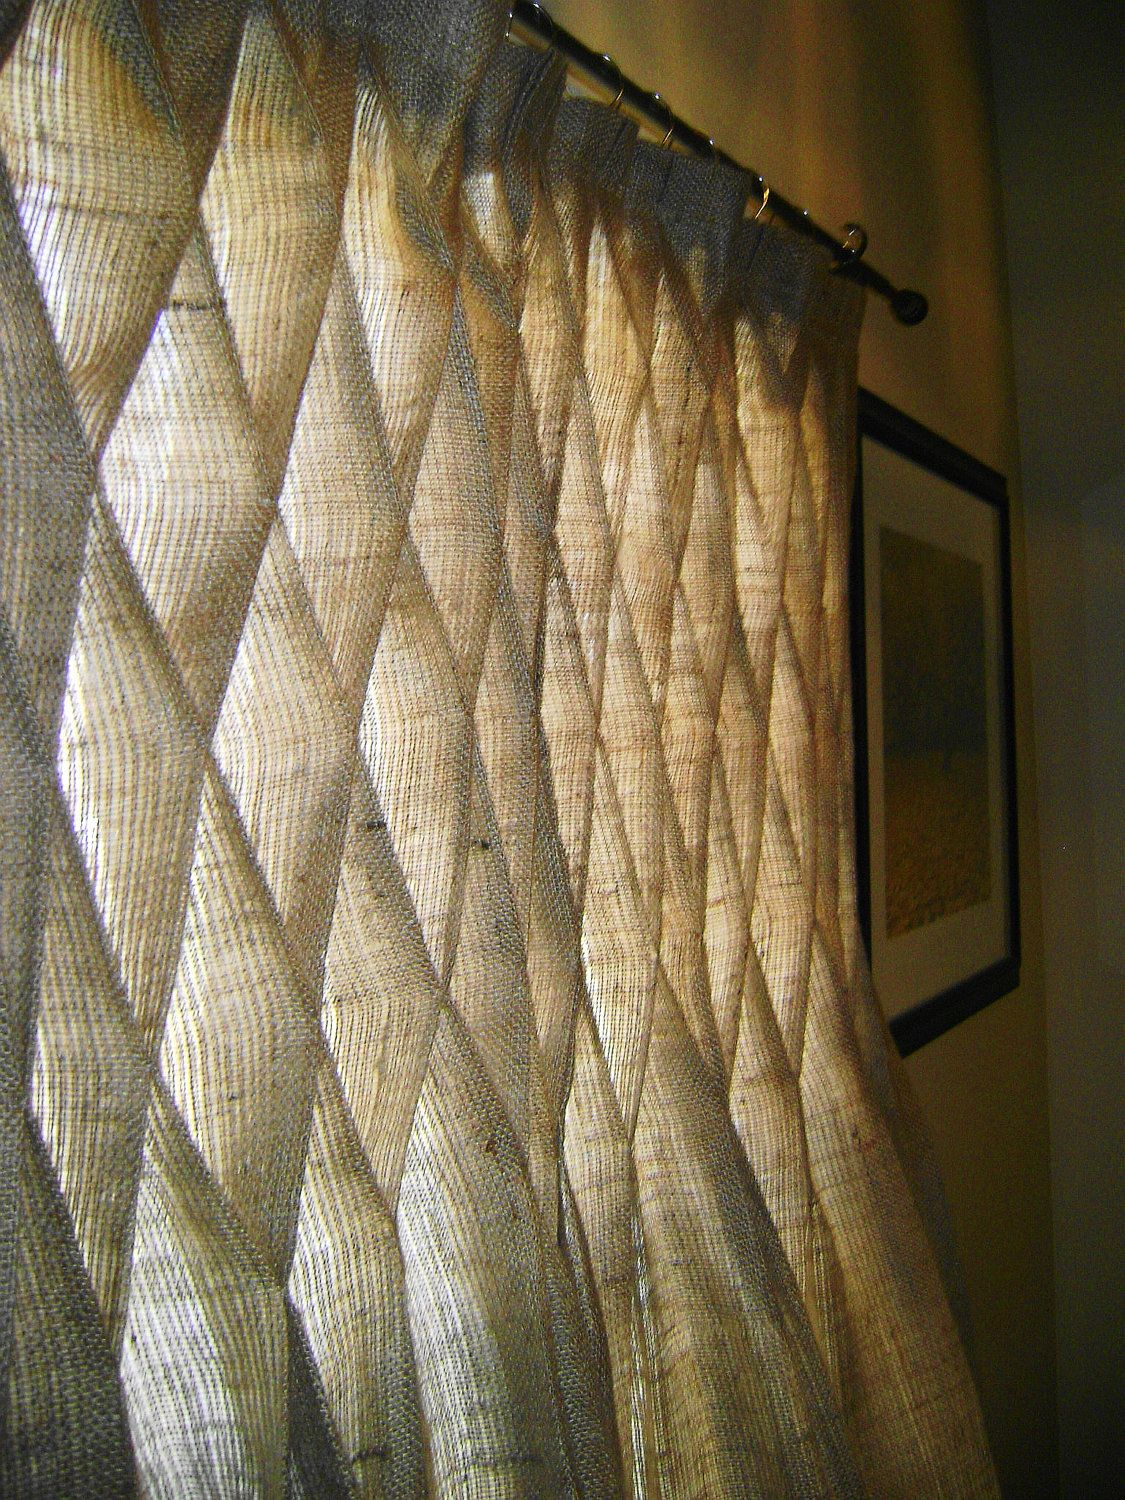 burlap smocked curtains drapes in natural or ivory 10000 via etsy